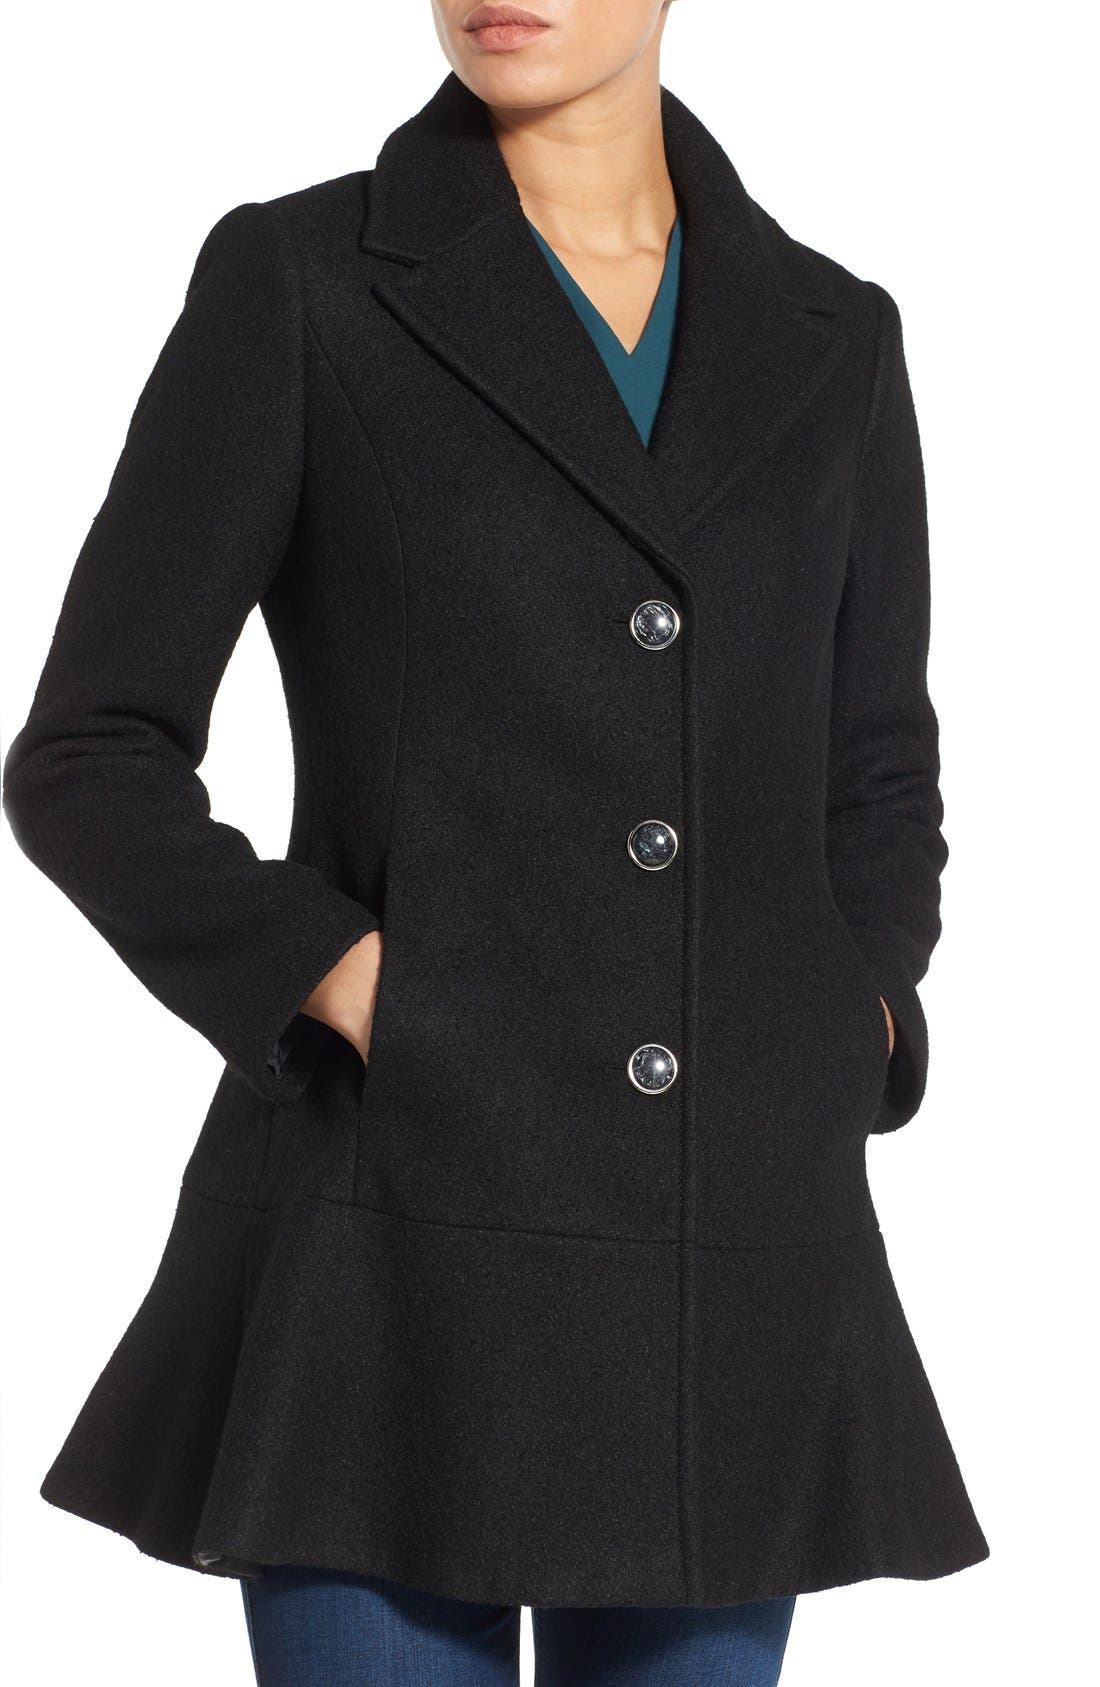 Notch Lapel Peplum Coat,                             Main thumbnail 6, color,